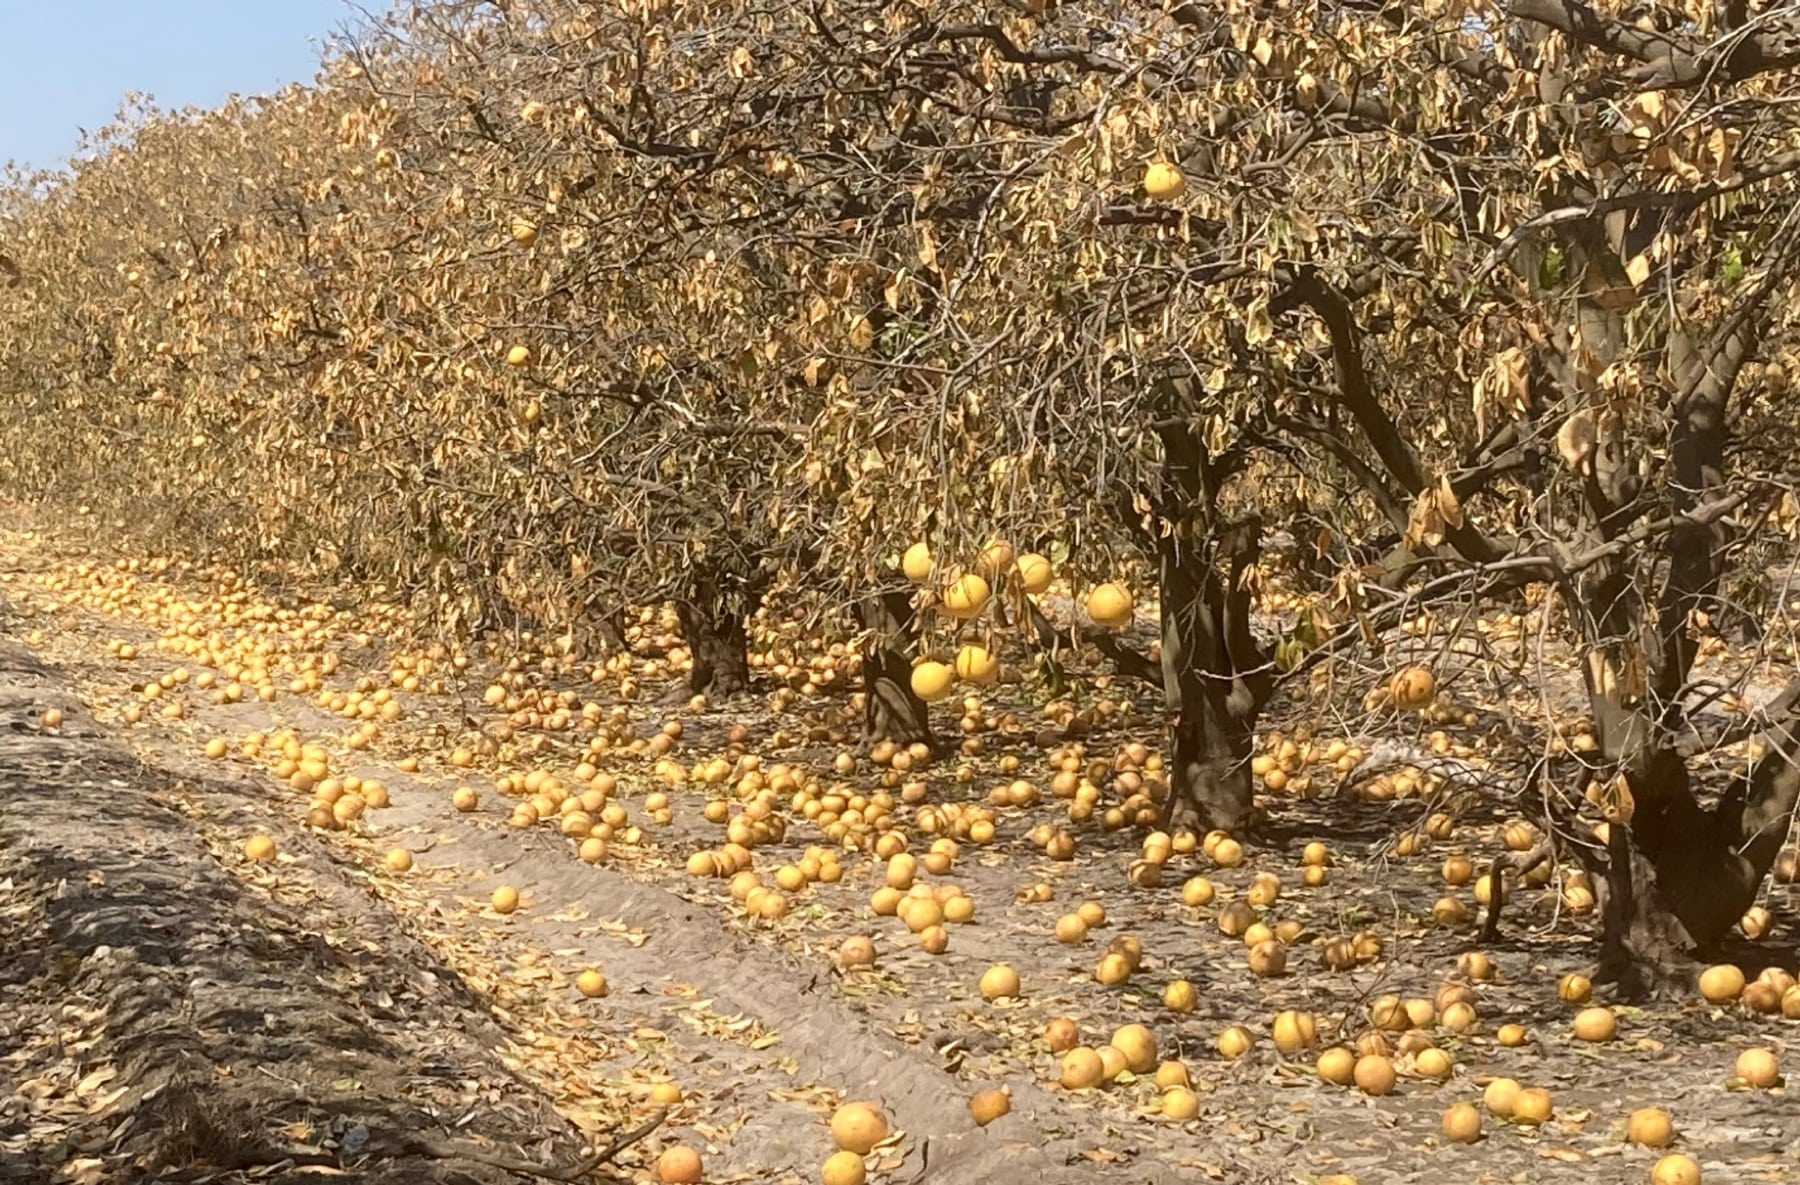 a long row of citrus trees, with dead looking branches and scores of oranges littered on the ground